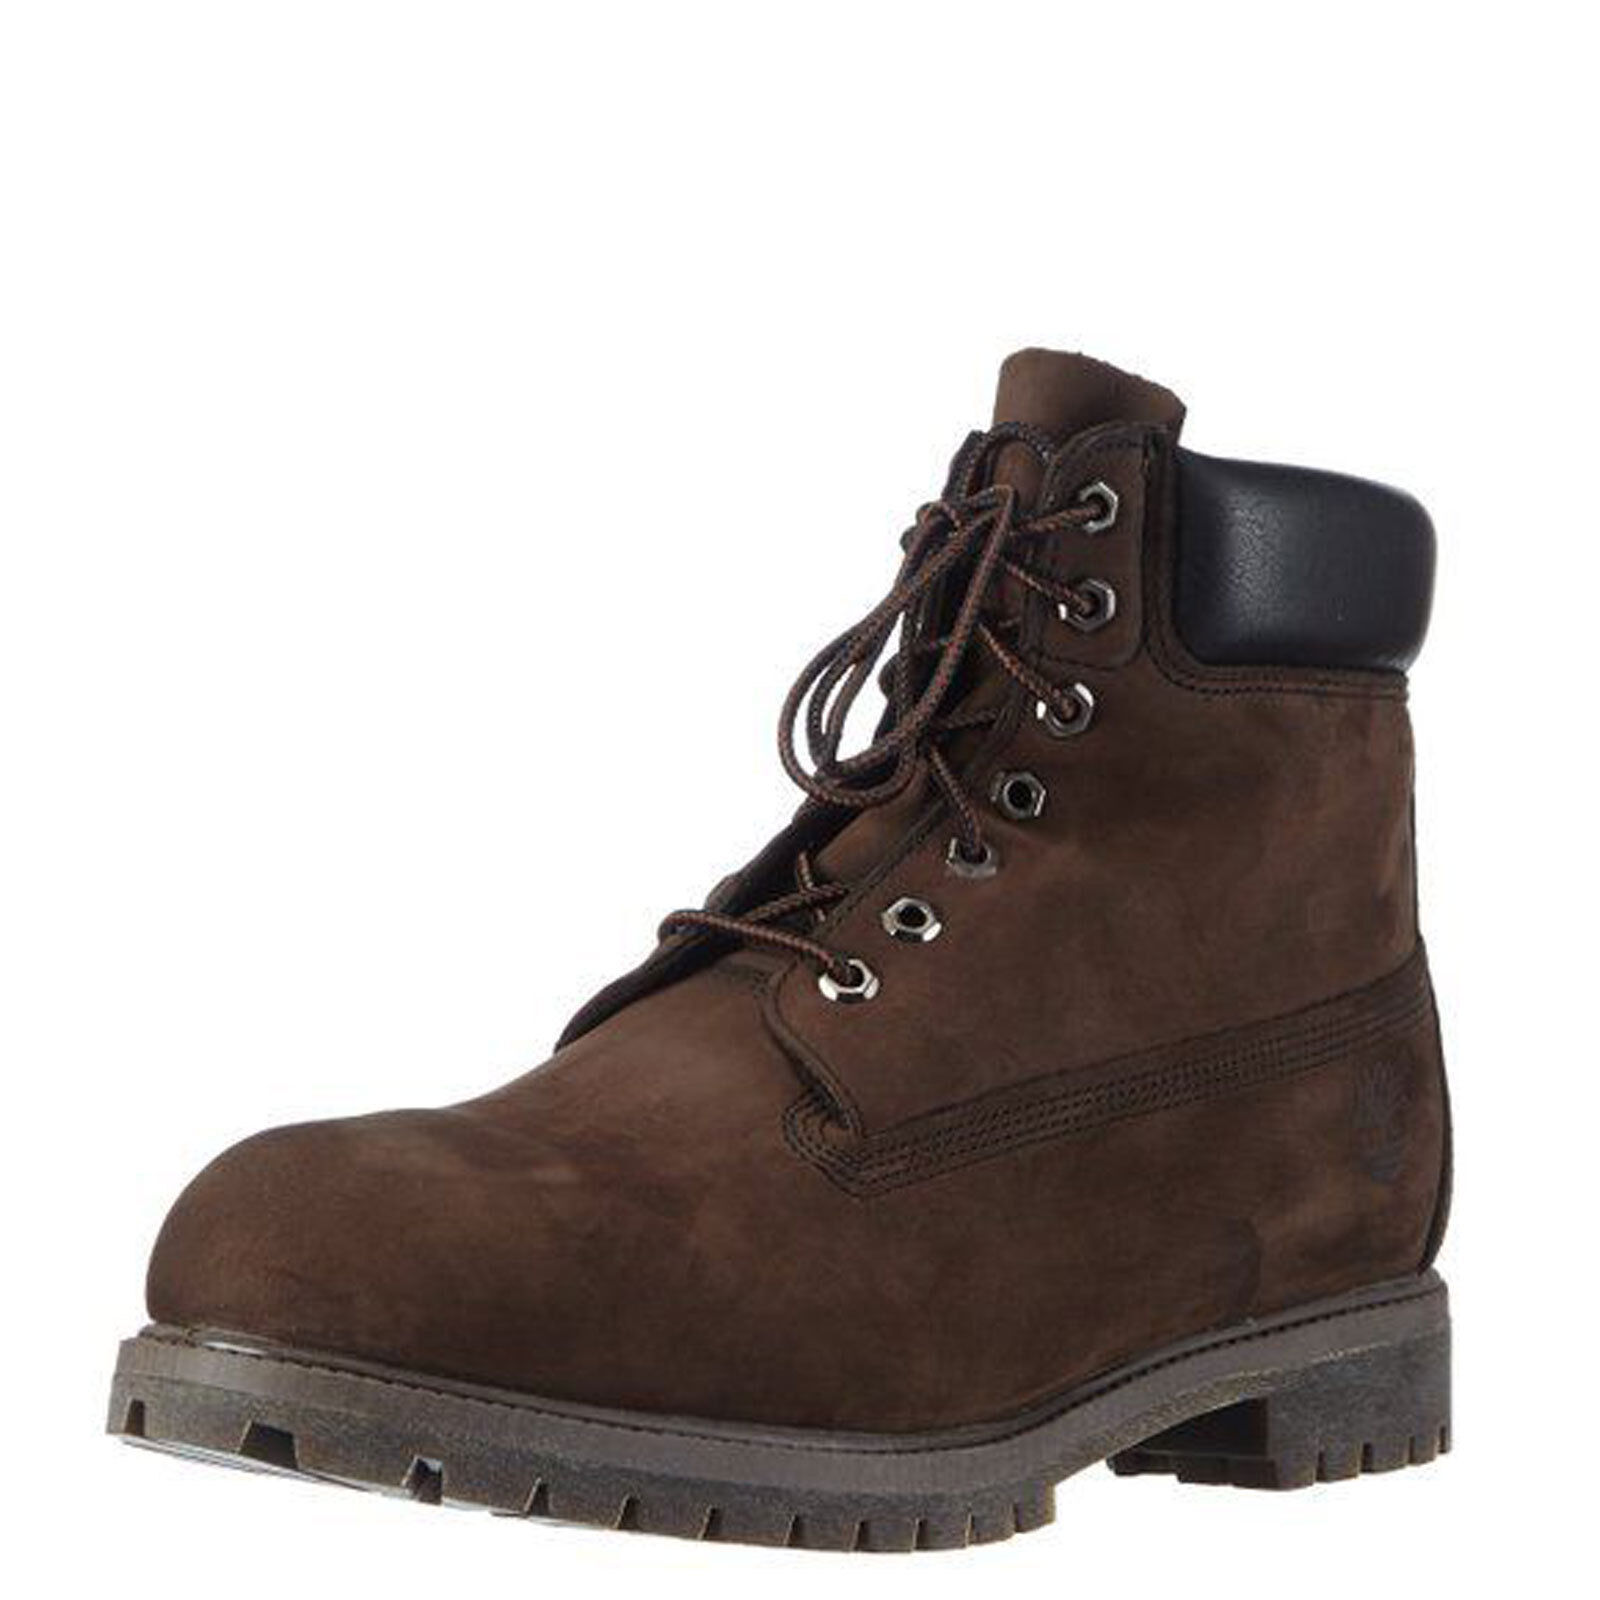 Timberland 6 Inch Premium Dark Brown Men's Waterproof Boots 10001